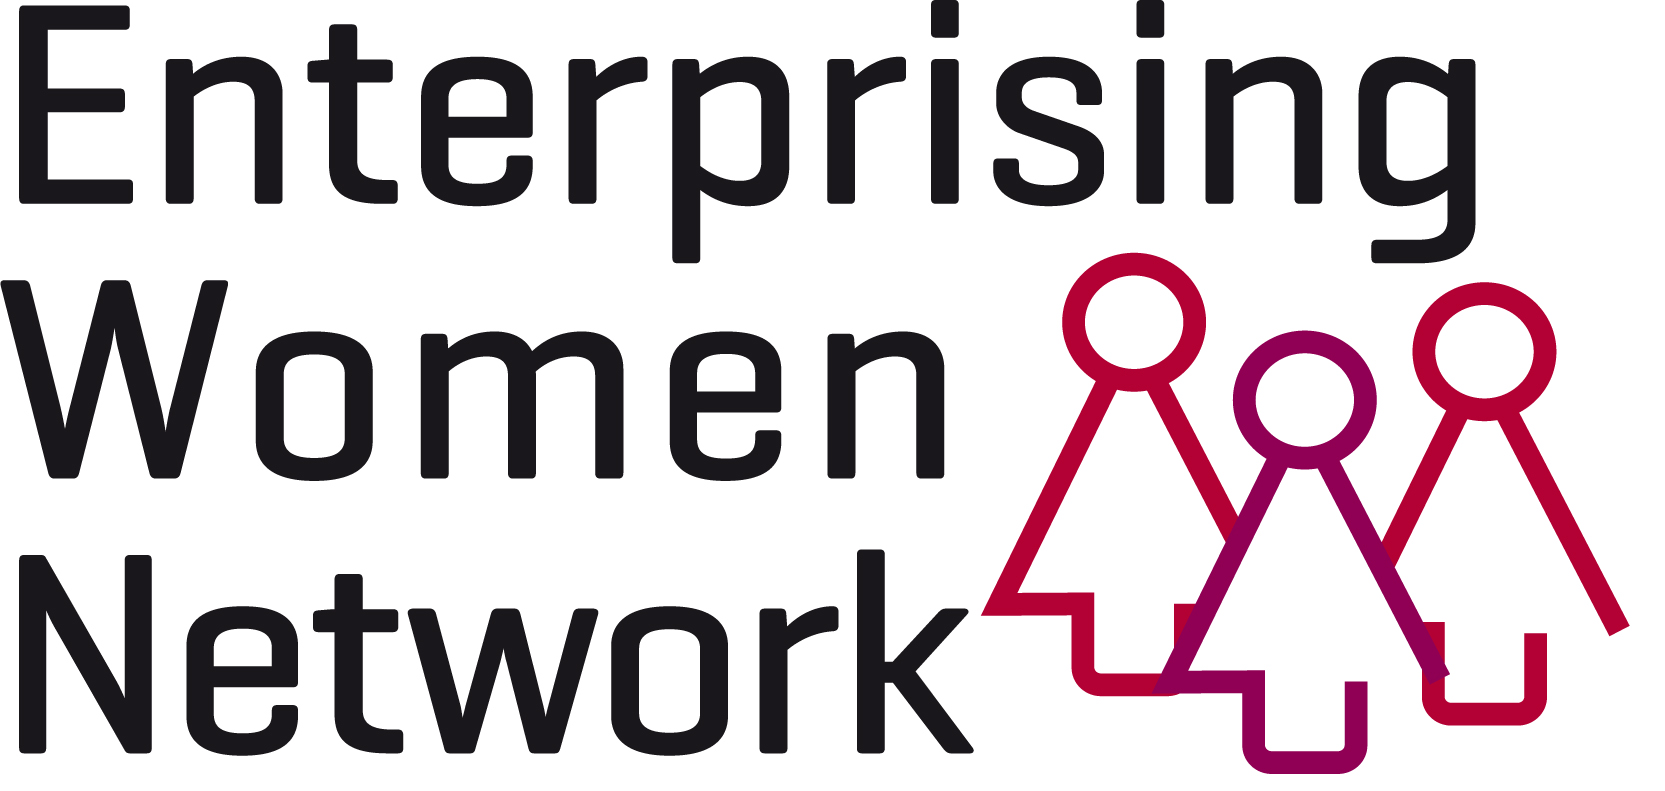 enterprising women local enterprise office dlr monthly business network for female owner managers logo enterprisingwomennetwork